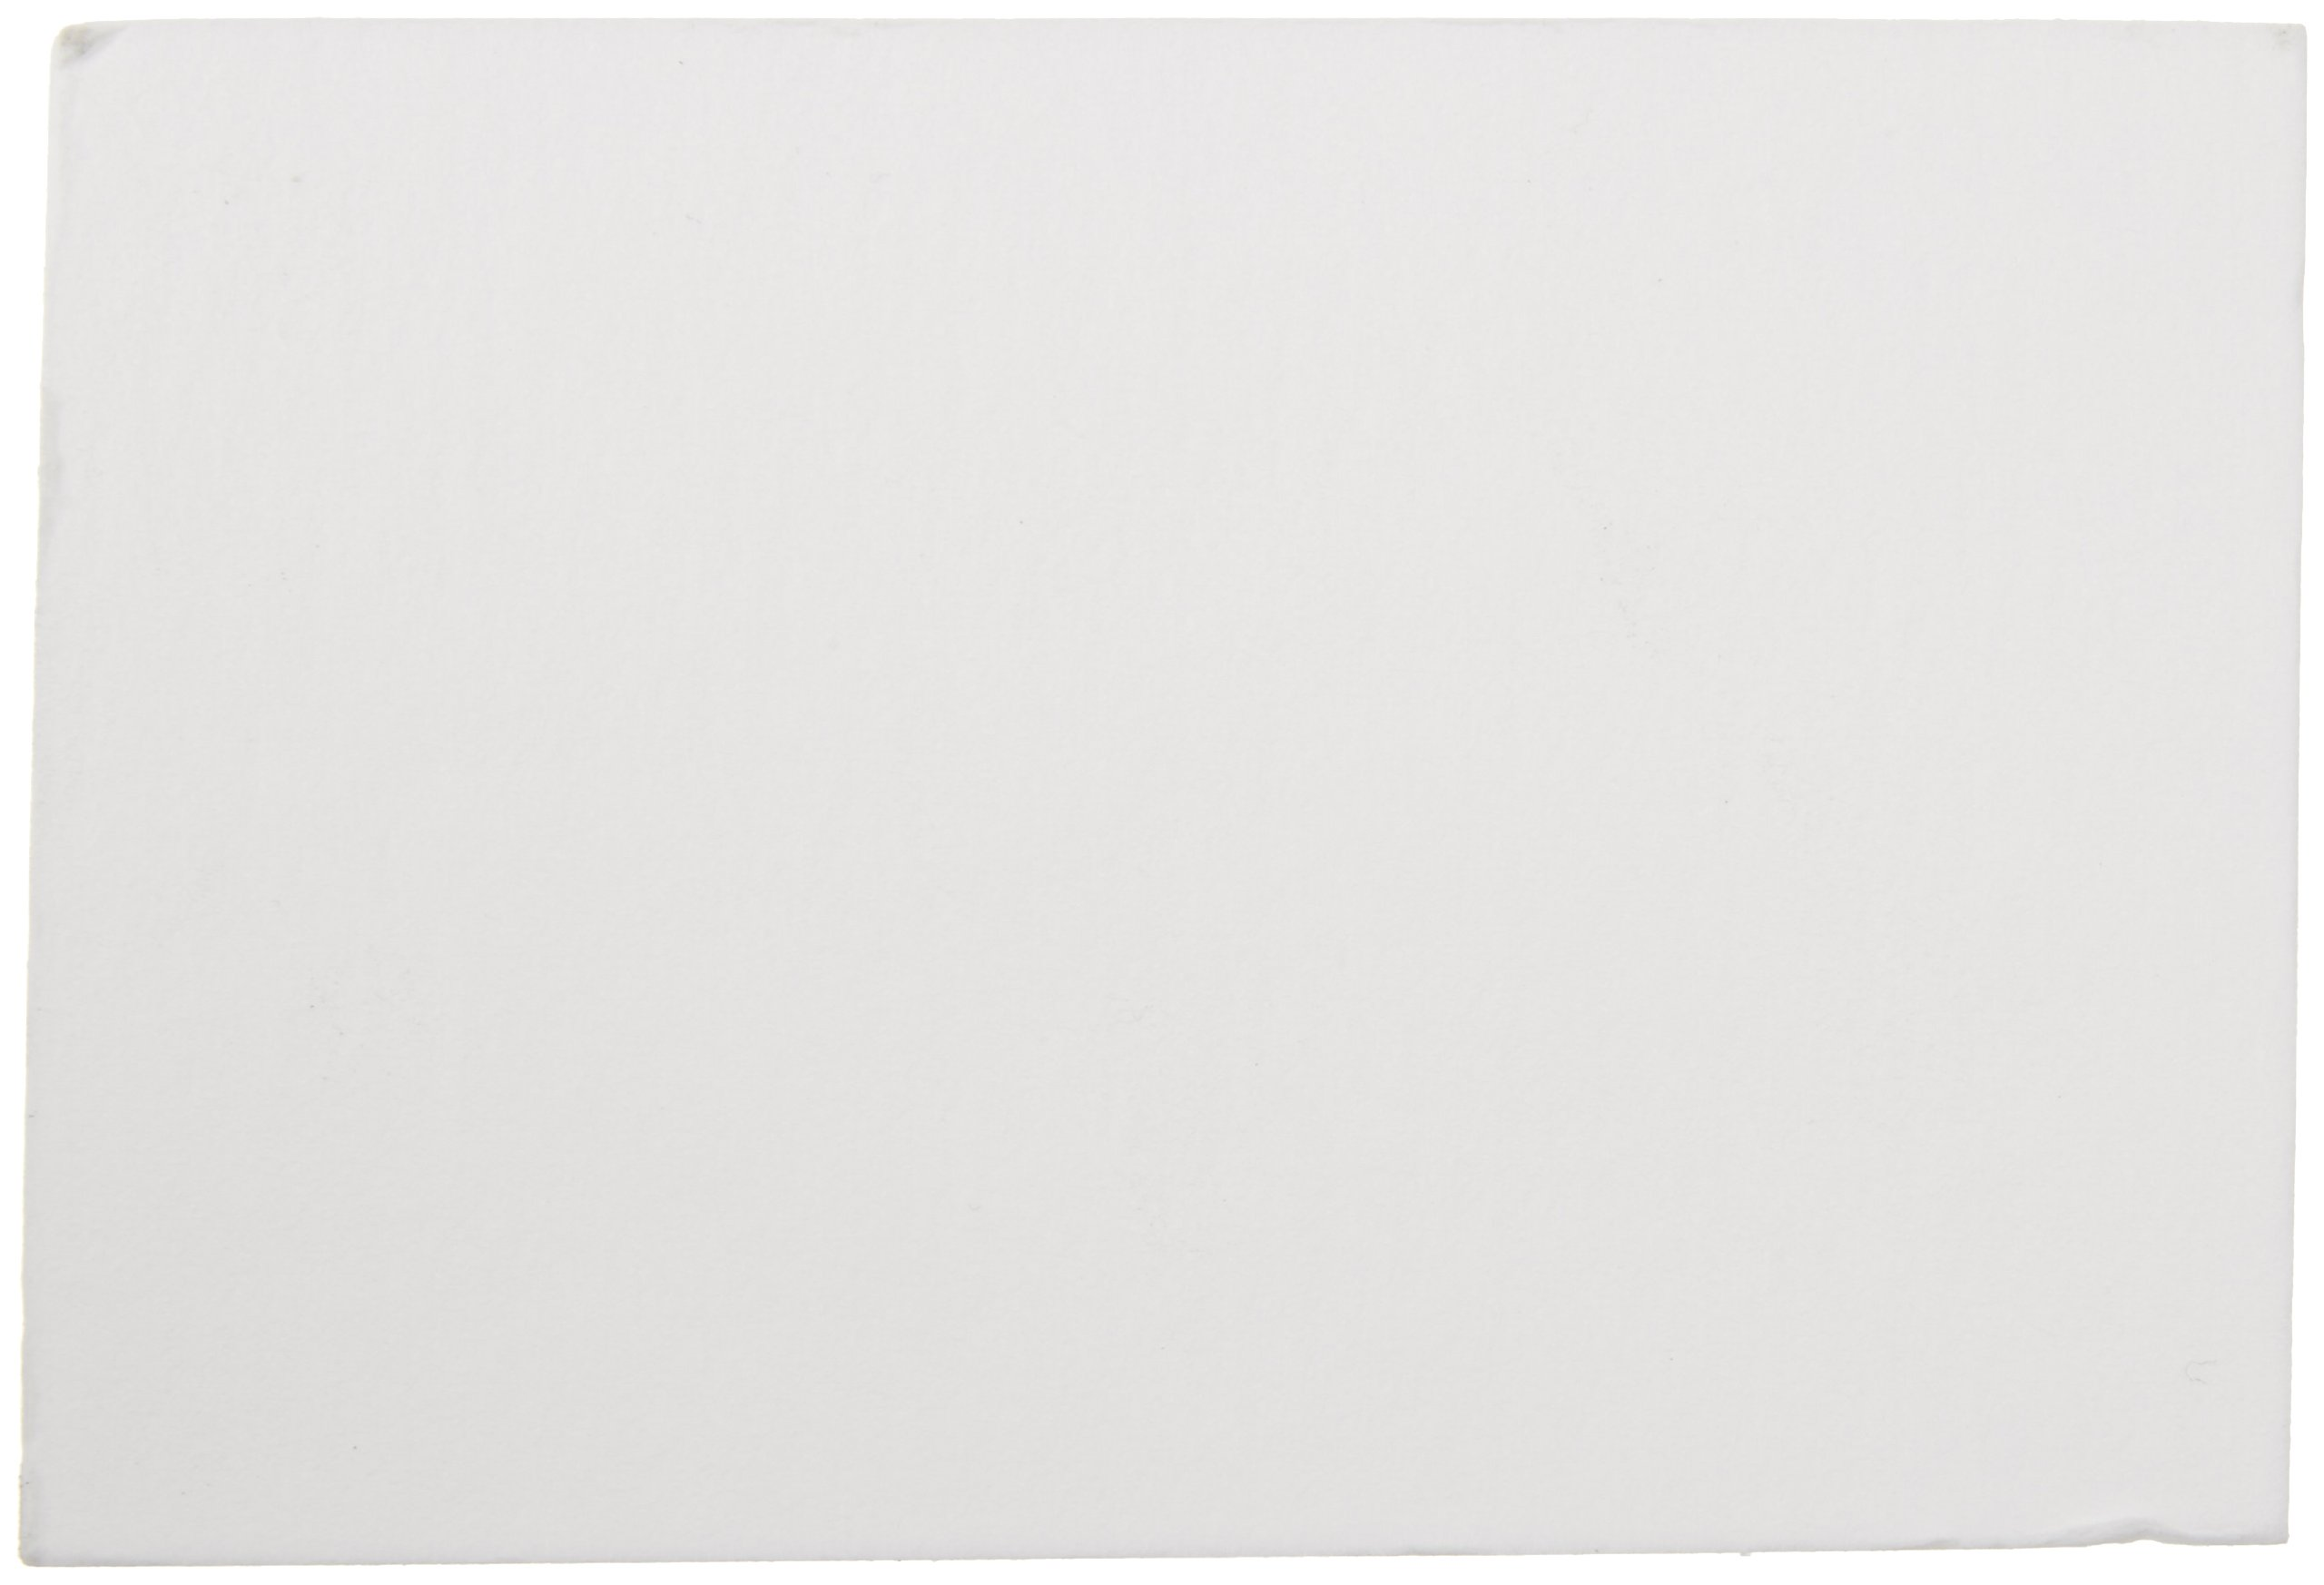 GE Whatman 10427806 Cellulose Standard Blotting Paper, Grade GB003, Sheet, 0.8mm Thickness, 70mm Width x 100mm Length (Pack of 100)